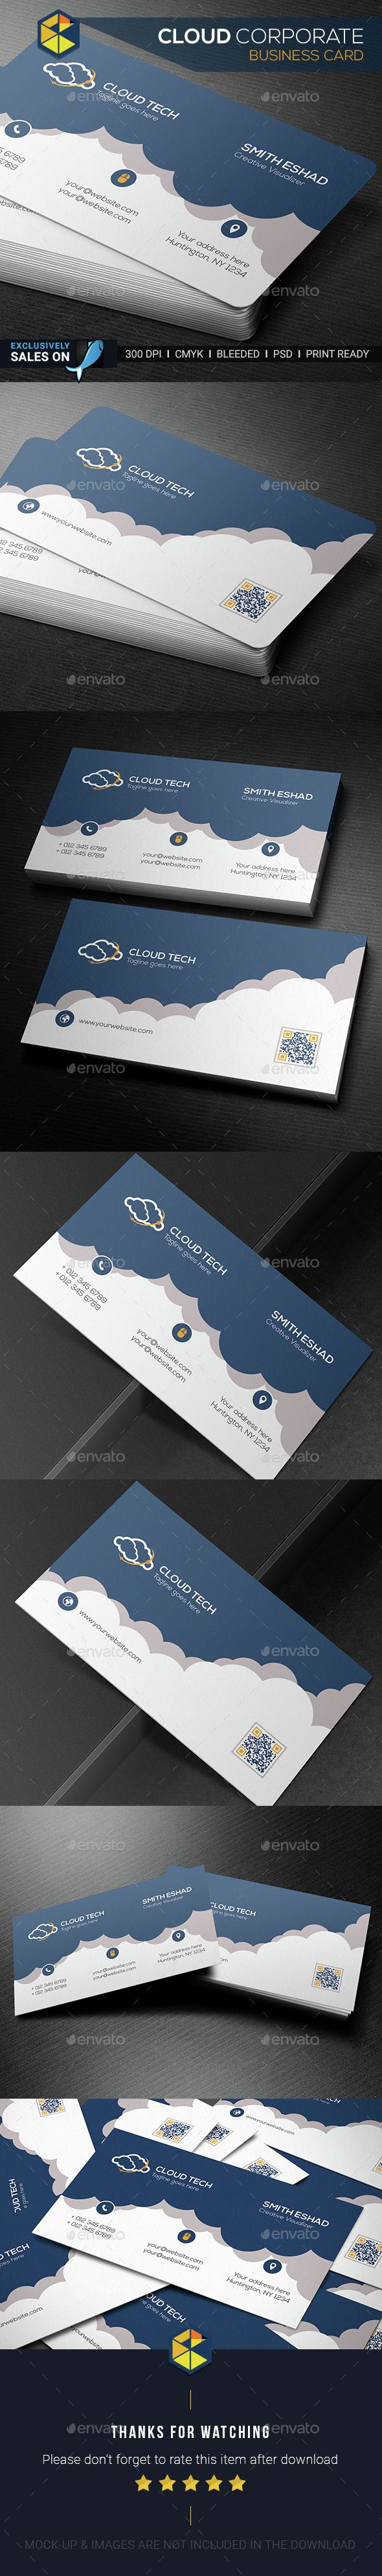 1735 best business card images on pinterest